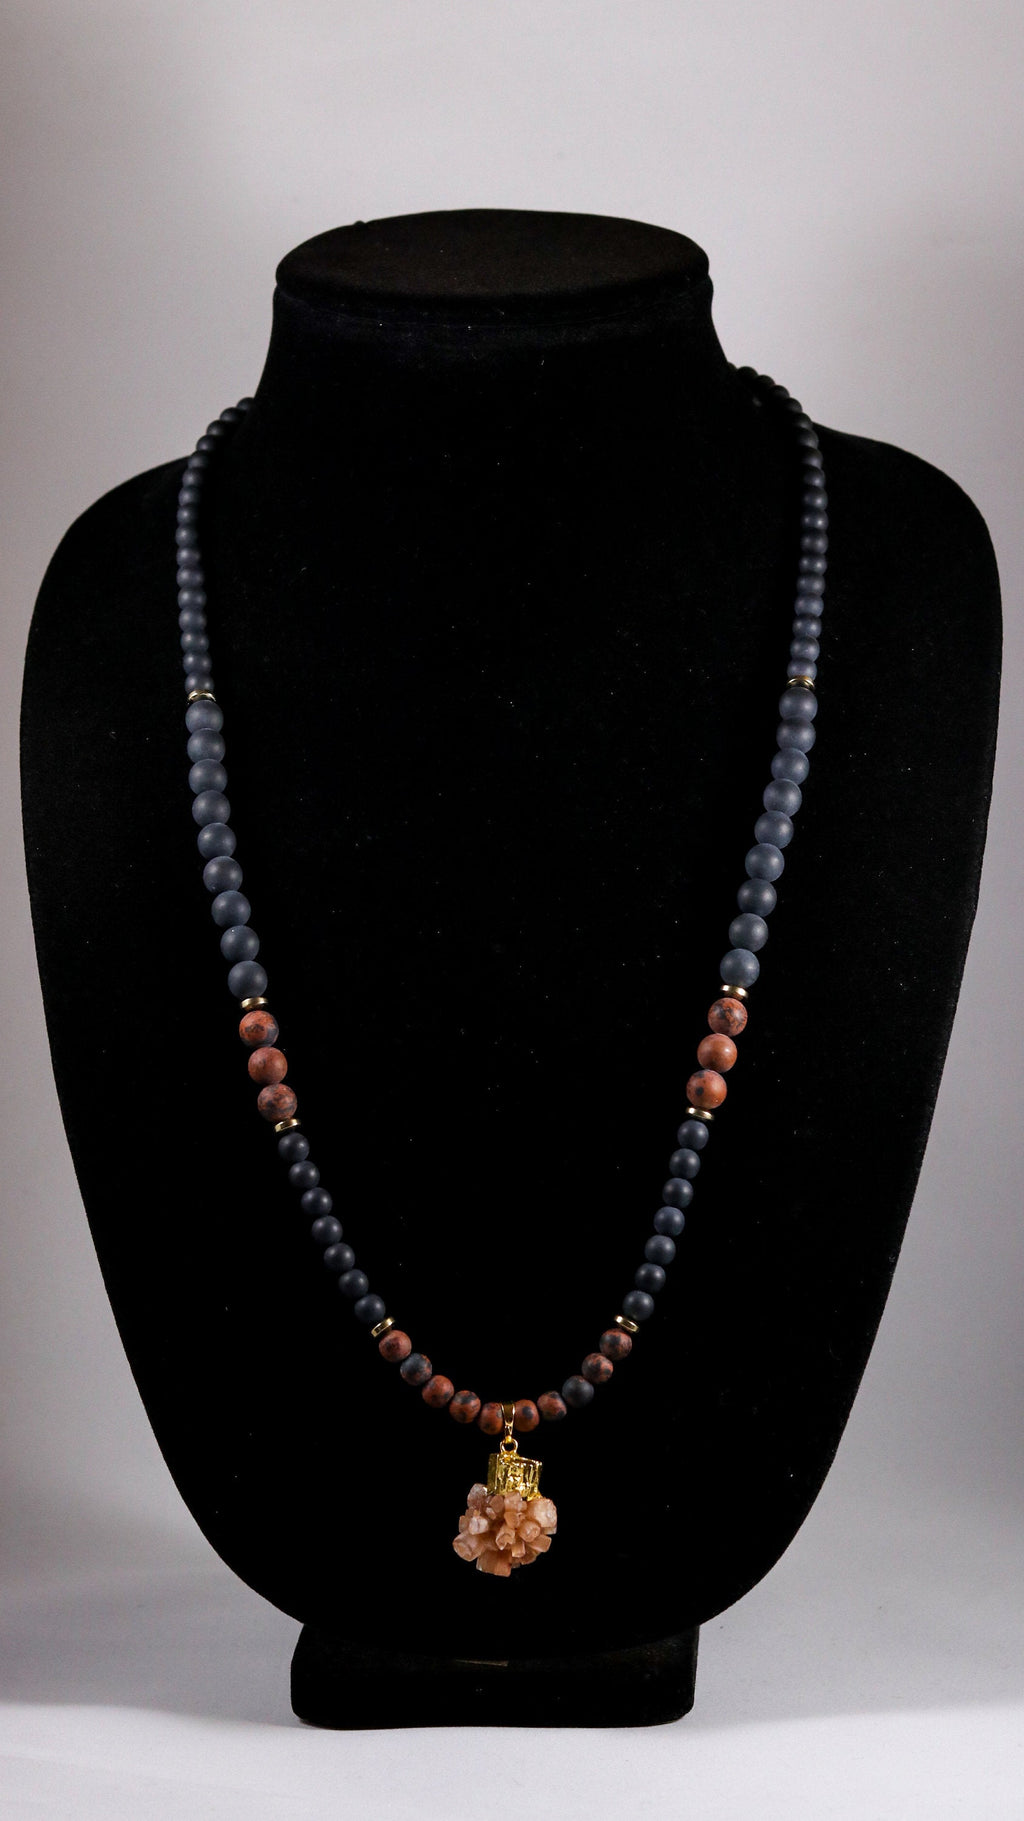 Raw Aragonite with Mahogany Obsidian/Onyx and Hematite beaded necklace - BurzanDesign